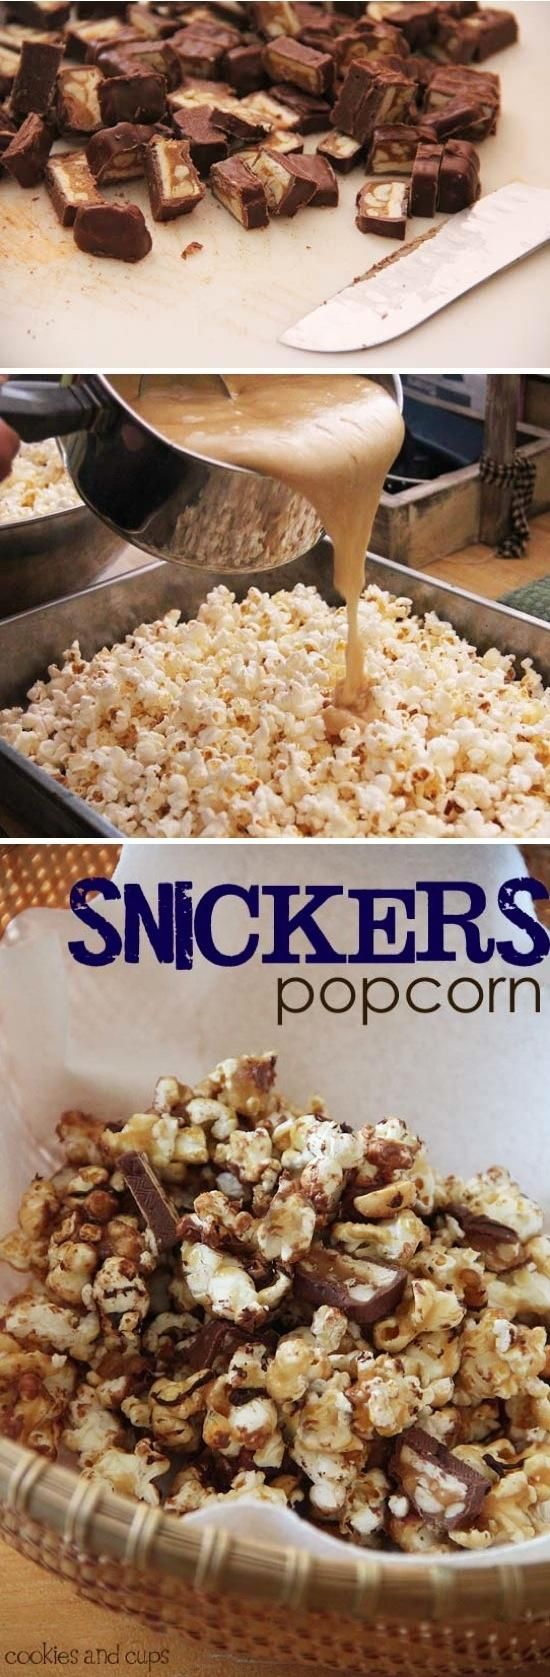 Snickers Popcorn! Omg, my favorite candy bar! Must make ASAP!